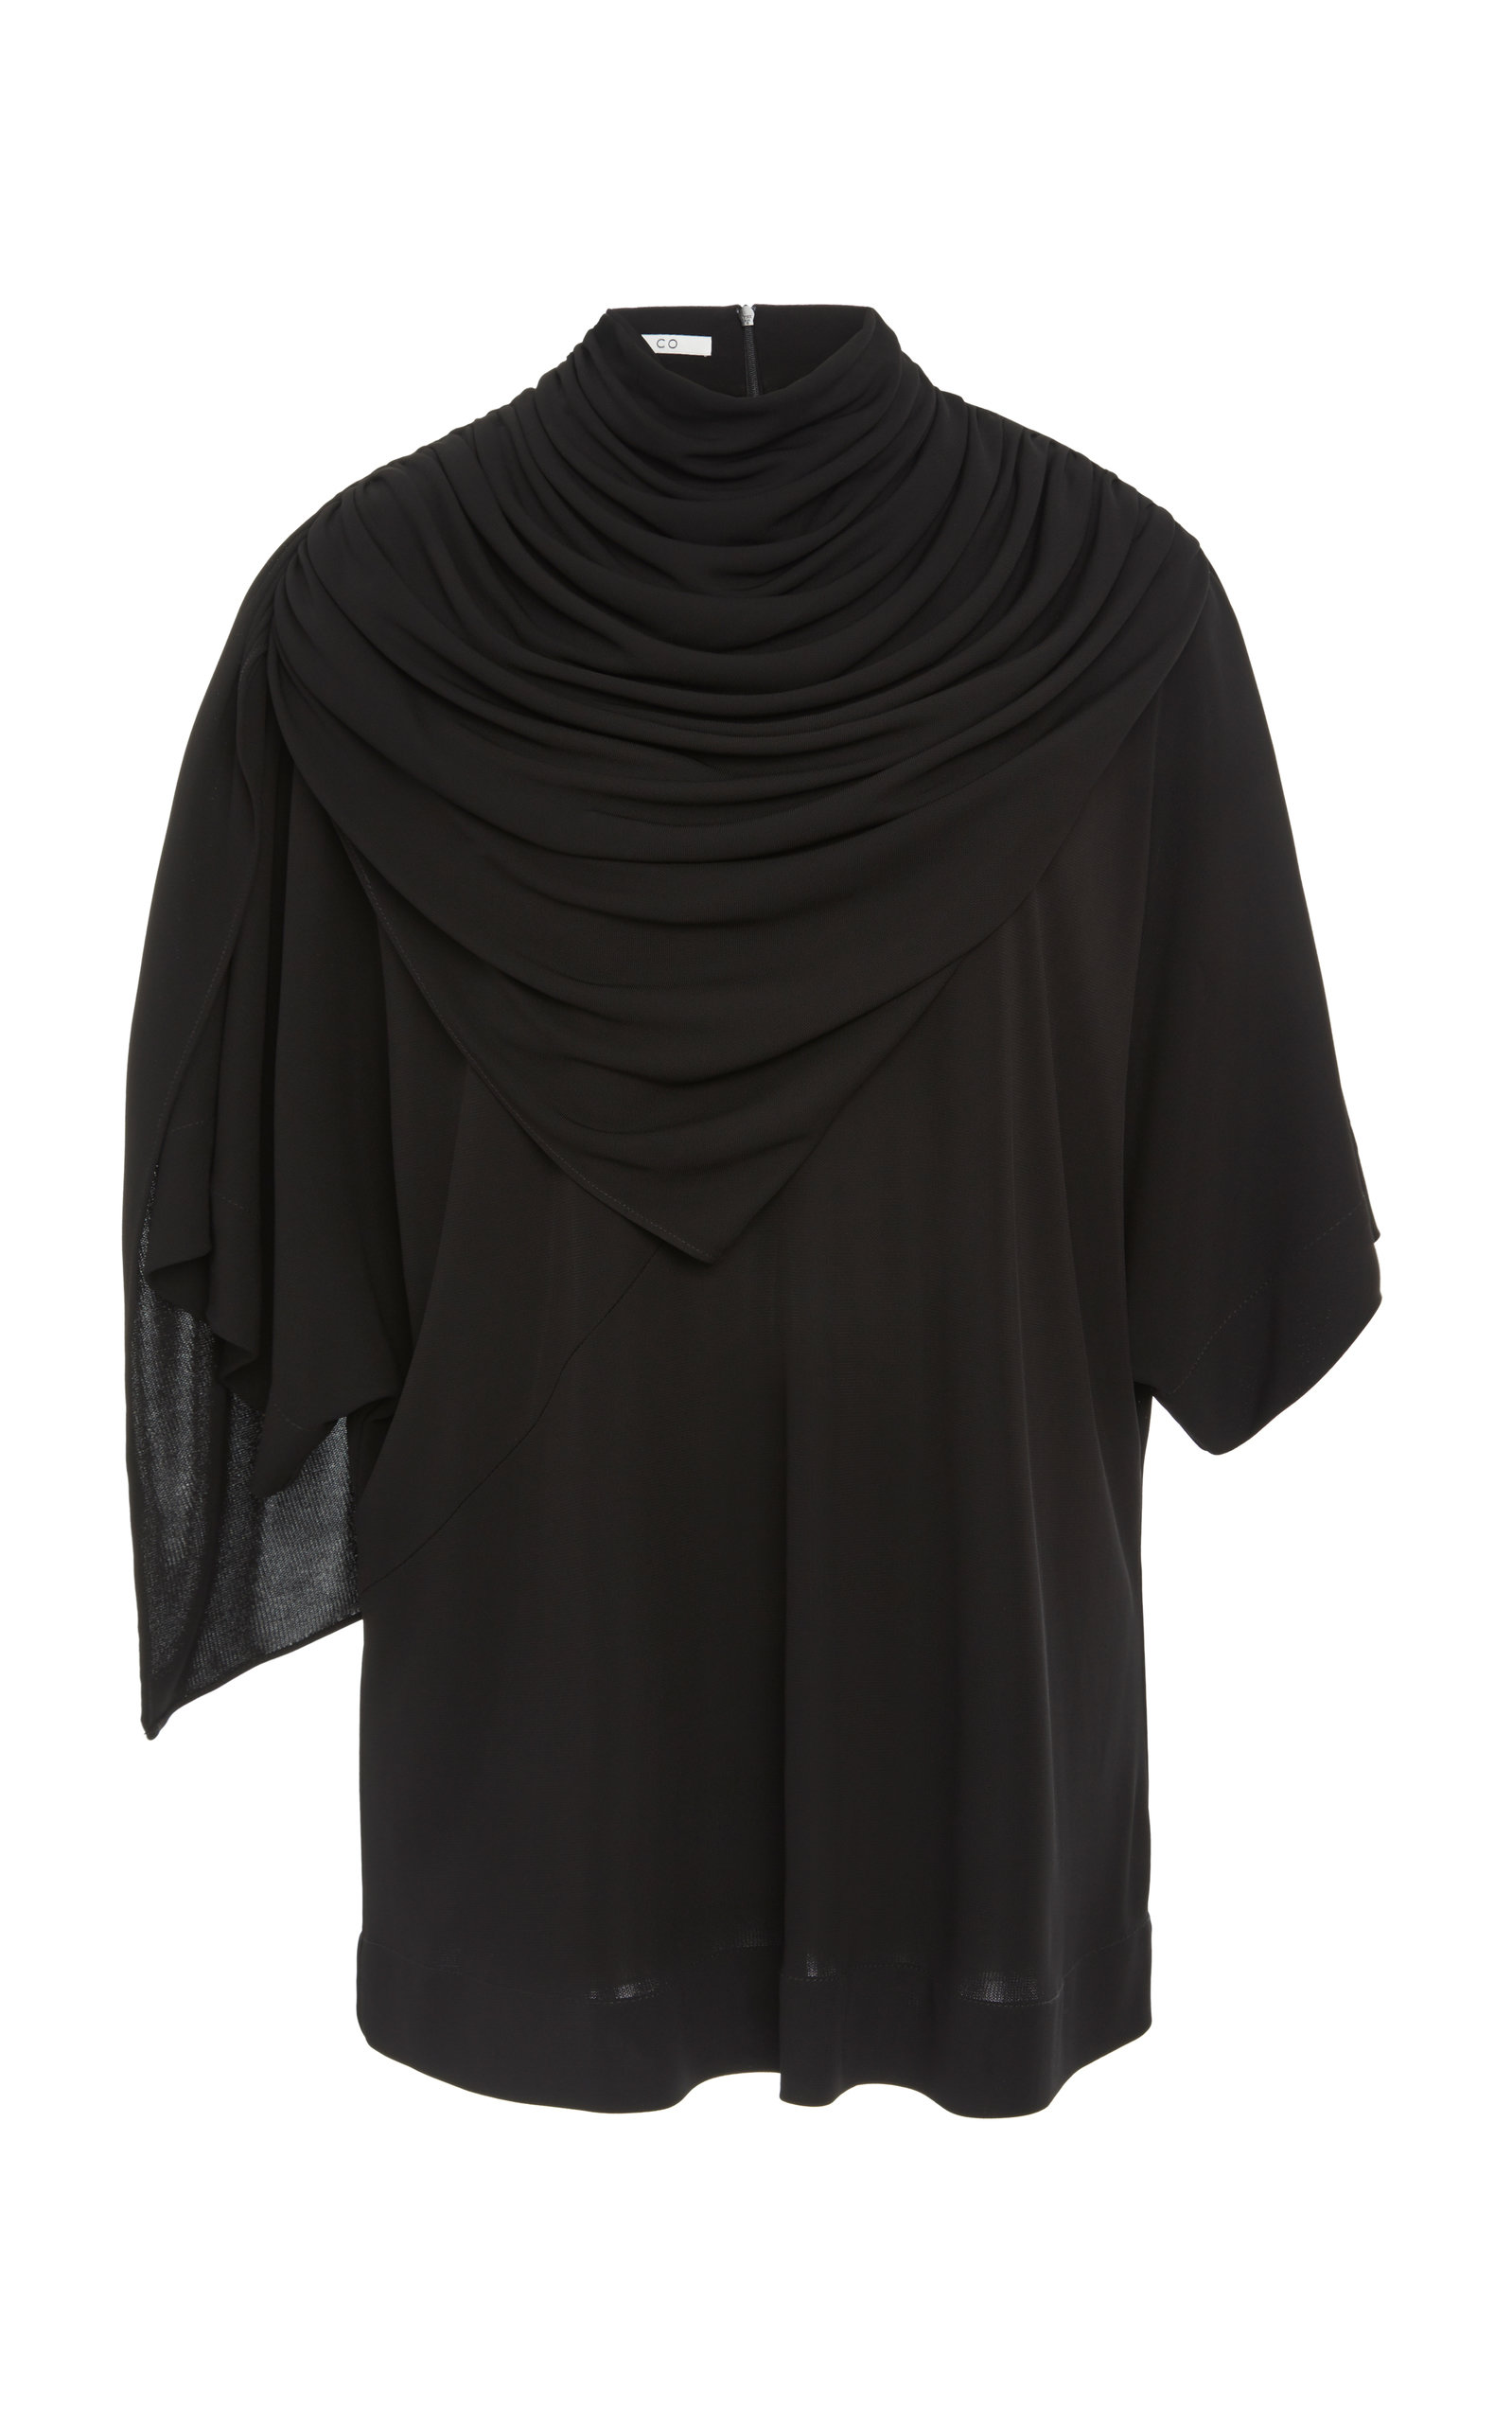 Co DRAPE-NECK TOP